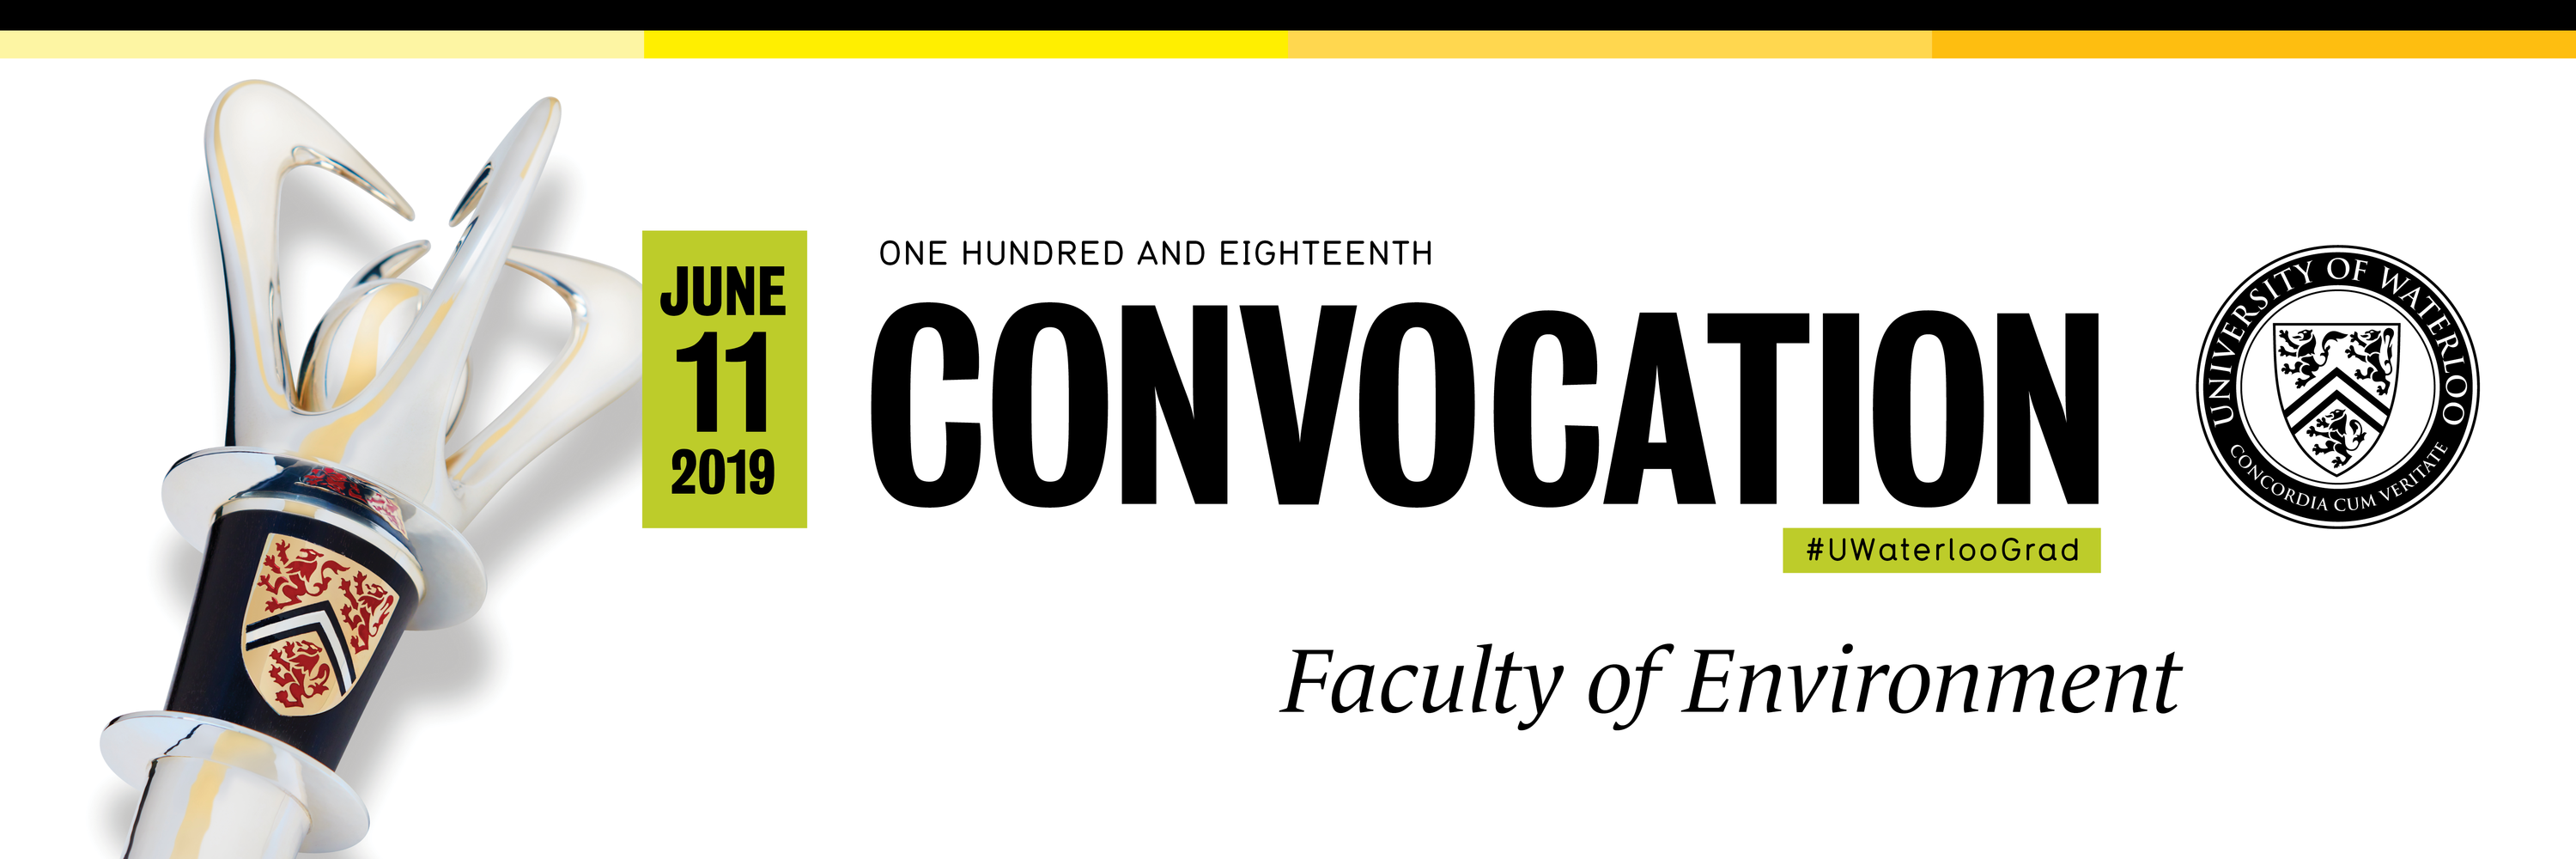 Faculty of Environment Convocation banner